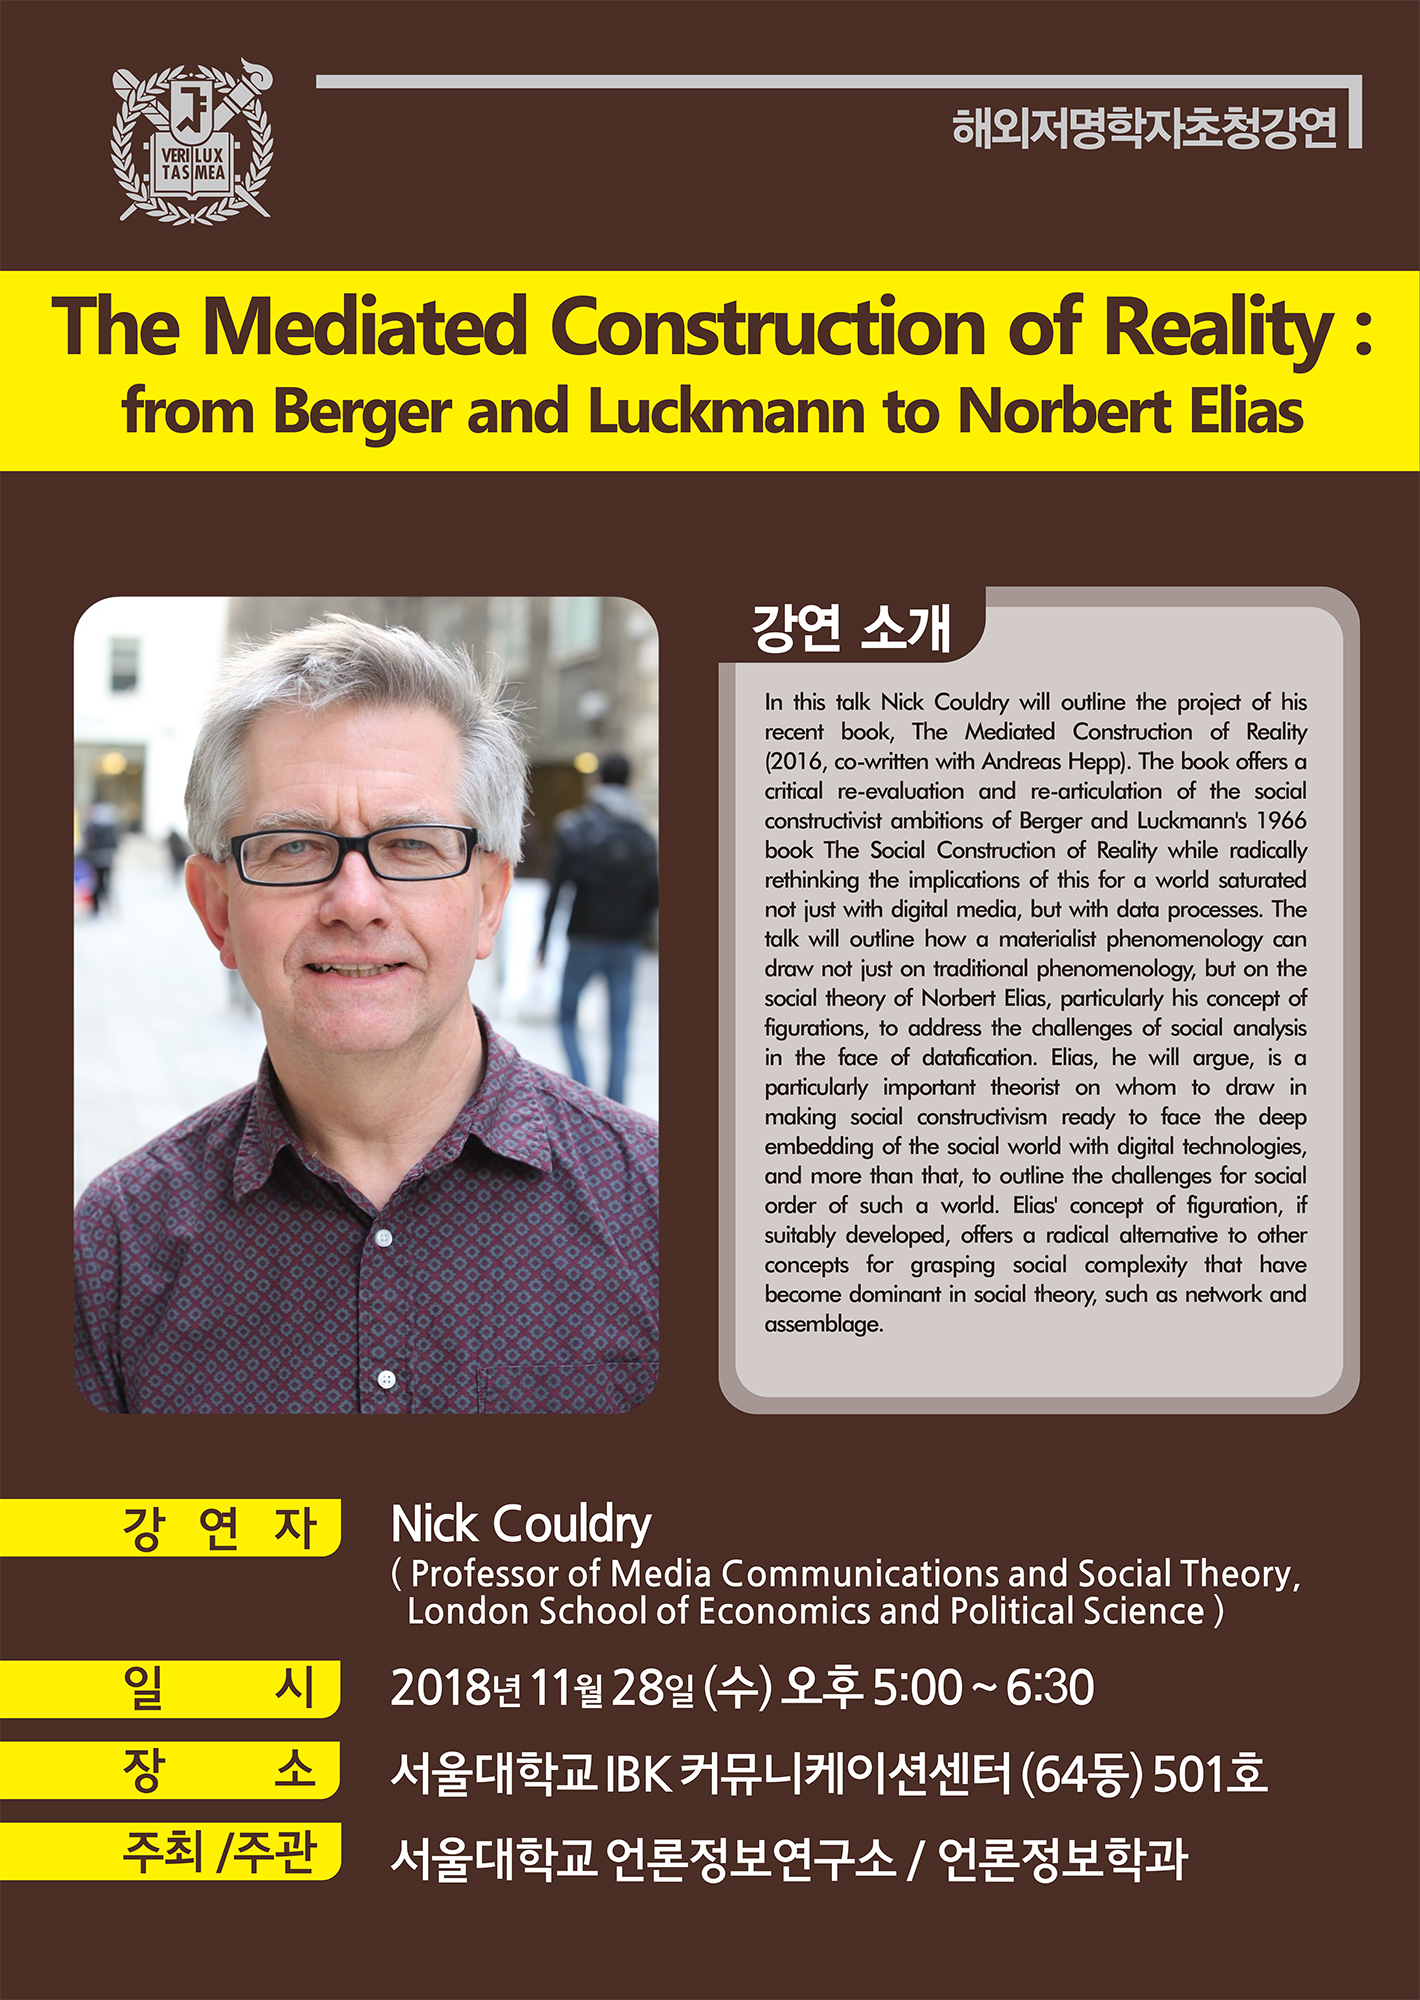 해외 저명학자 초청강연: Nick Couldry - The Mediated Construction of Reality : from Berger and Luckmann to Norbert Elias